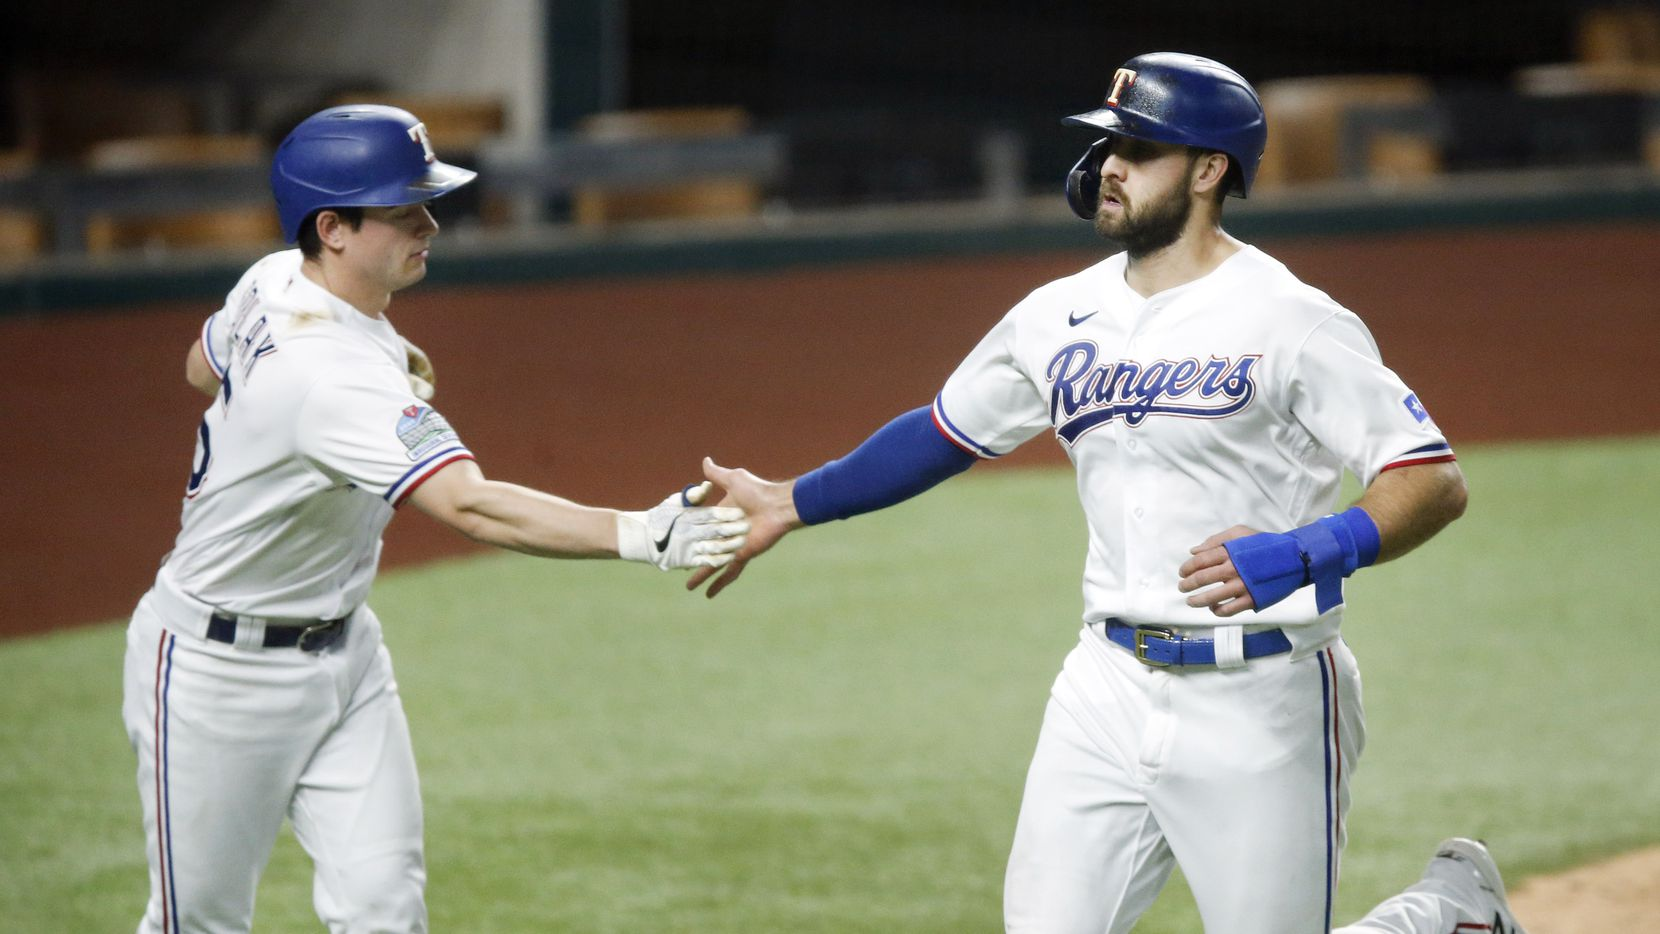 Texas Rangers Joey Gallo (right) is congratulated by teammate Nick Solak after they both scored on a Los Angeles Angels error during the fourth inning at Globe Life Field in Arlington, Texas, Tuesday, September 8, 2020.